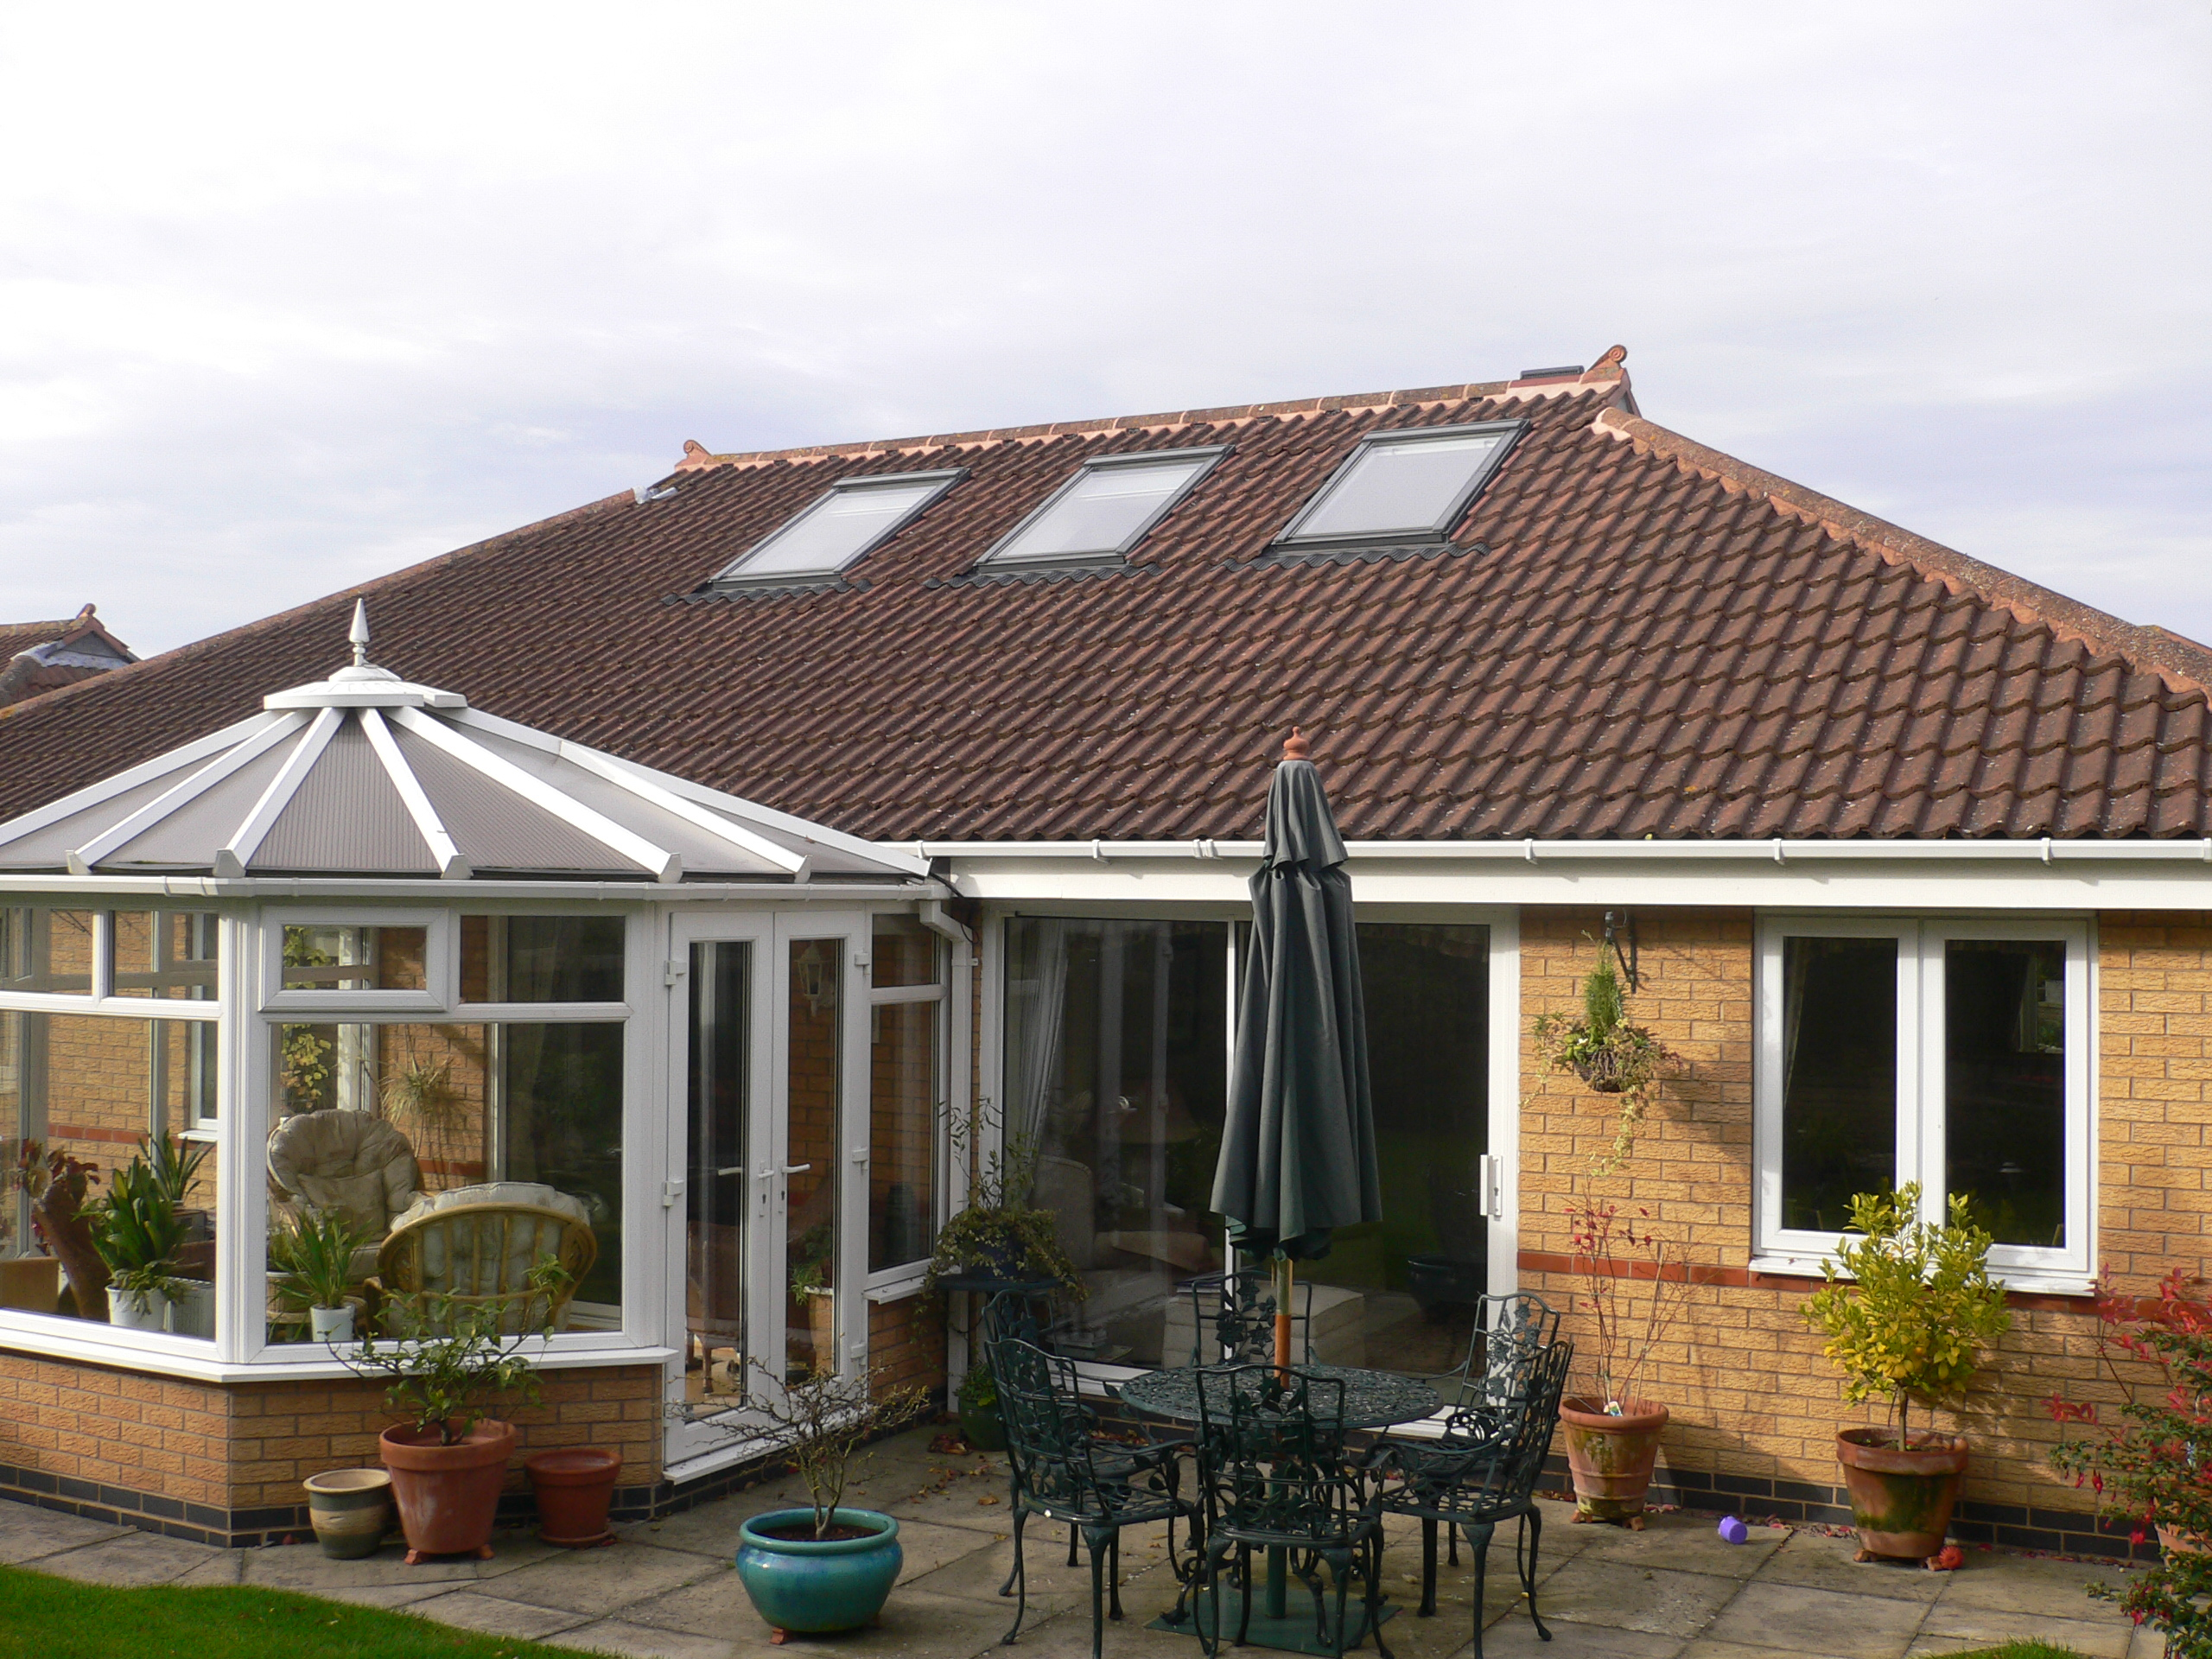 40 - Loft Conversion - 3 Velux windows.jpg